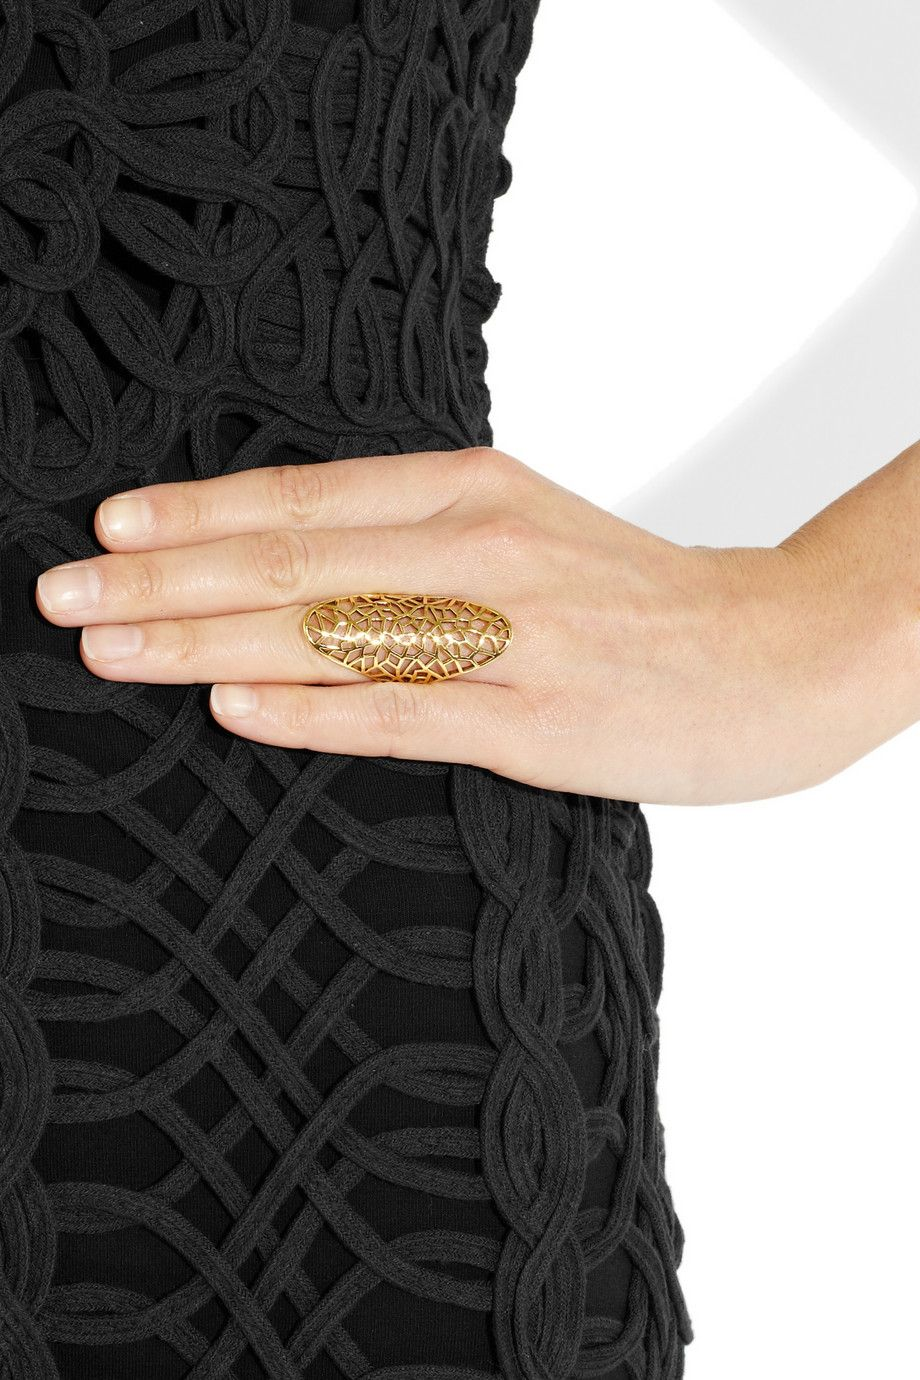 Zadig & Voltaire|By Gaia Repossi 18-karat gold-plated ring|NET-A-PORTER.COM